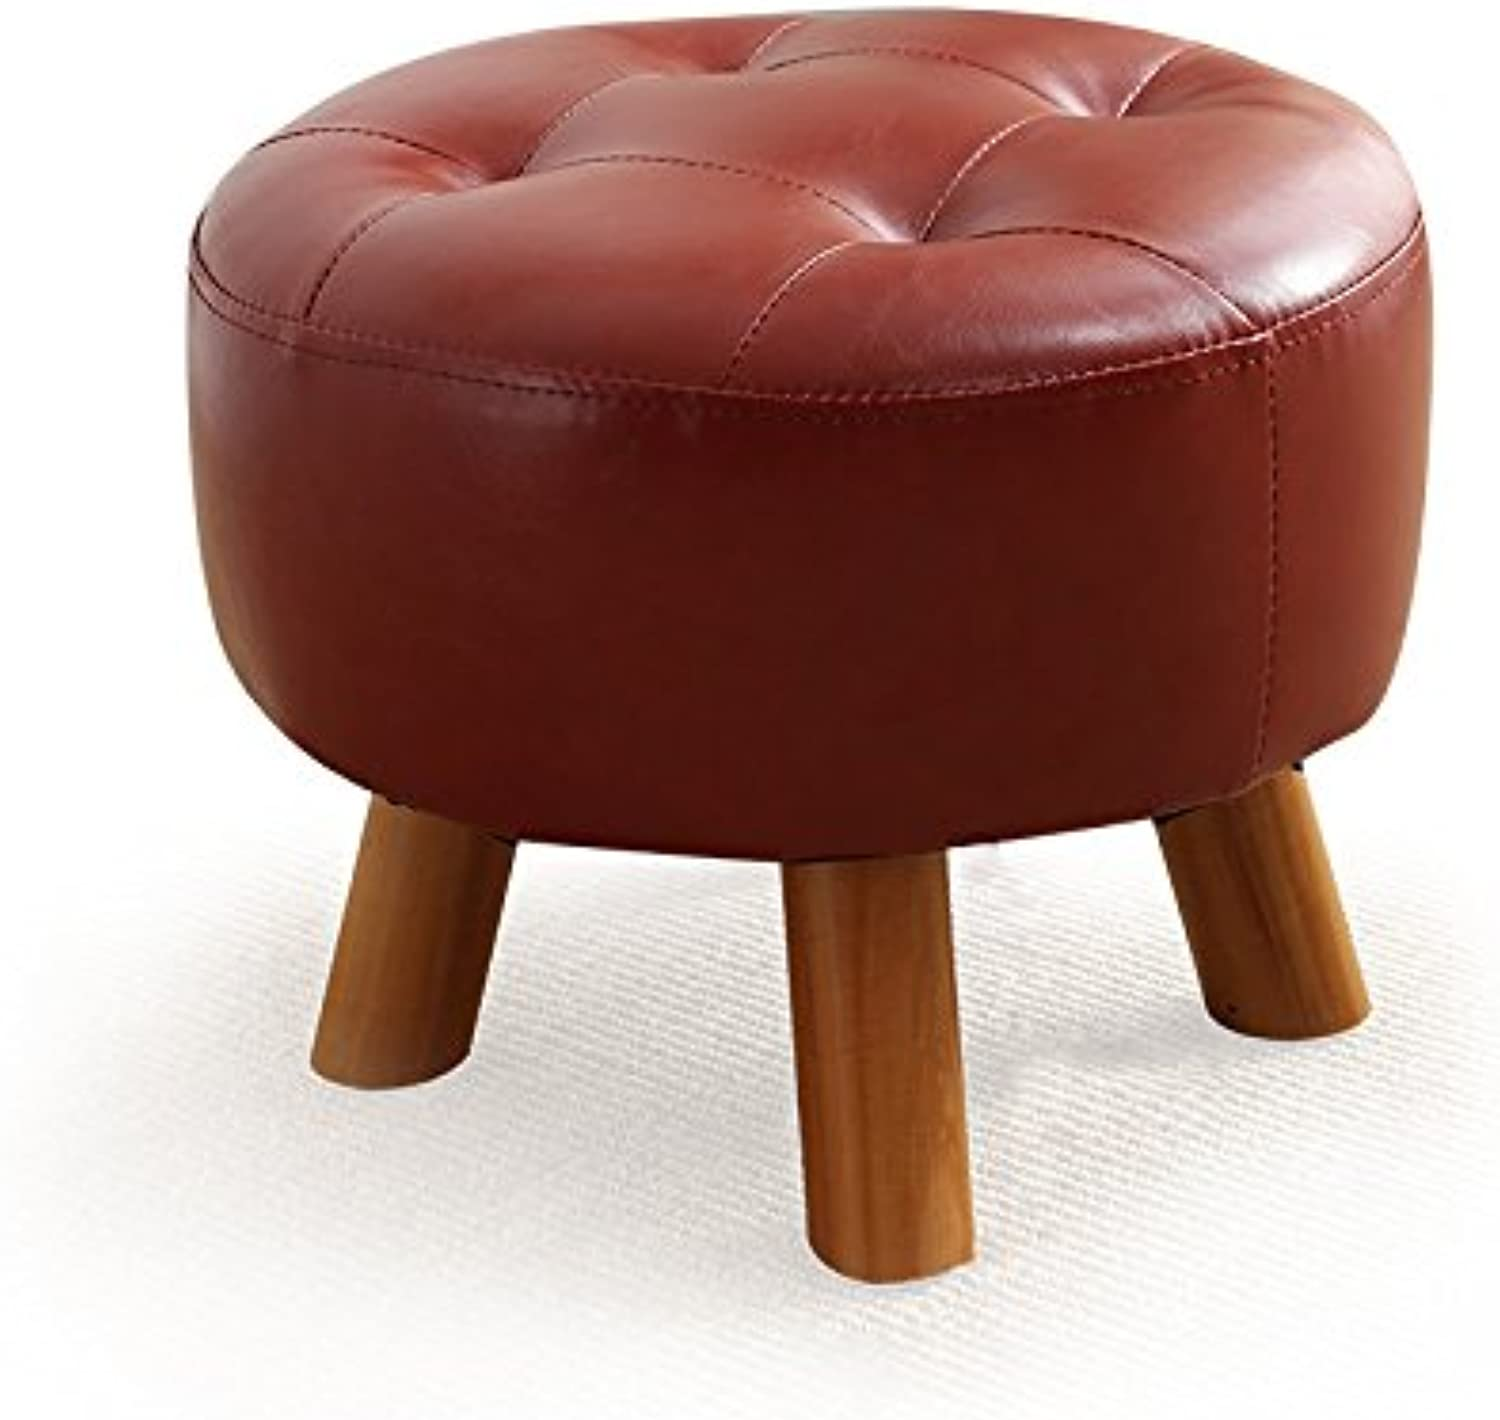 Solid Wood shoes Bench Creative Sofa Stool Fabric Stool Home Stool Leather Stool Makeup Stool Fashion Stool 0522A (color   Red)